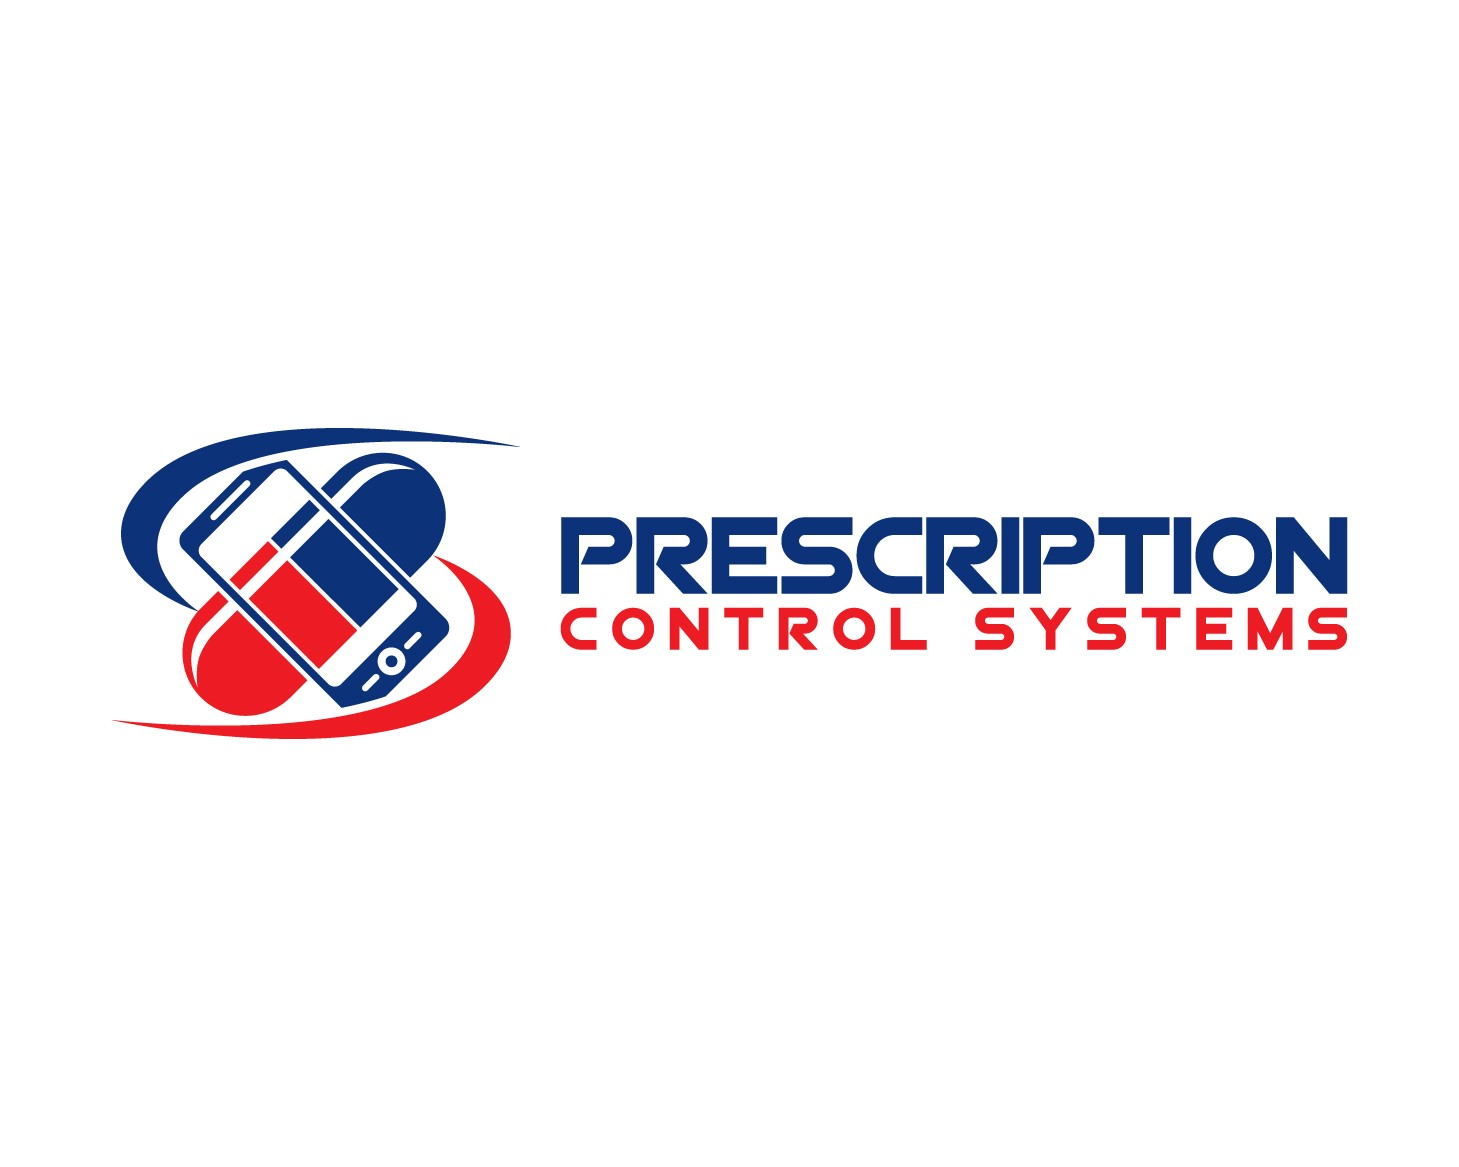 Prescription Control Systems